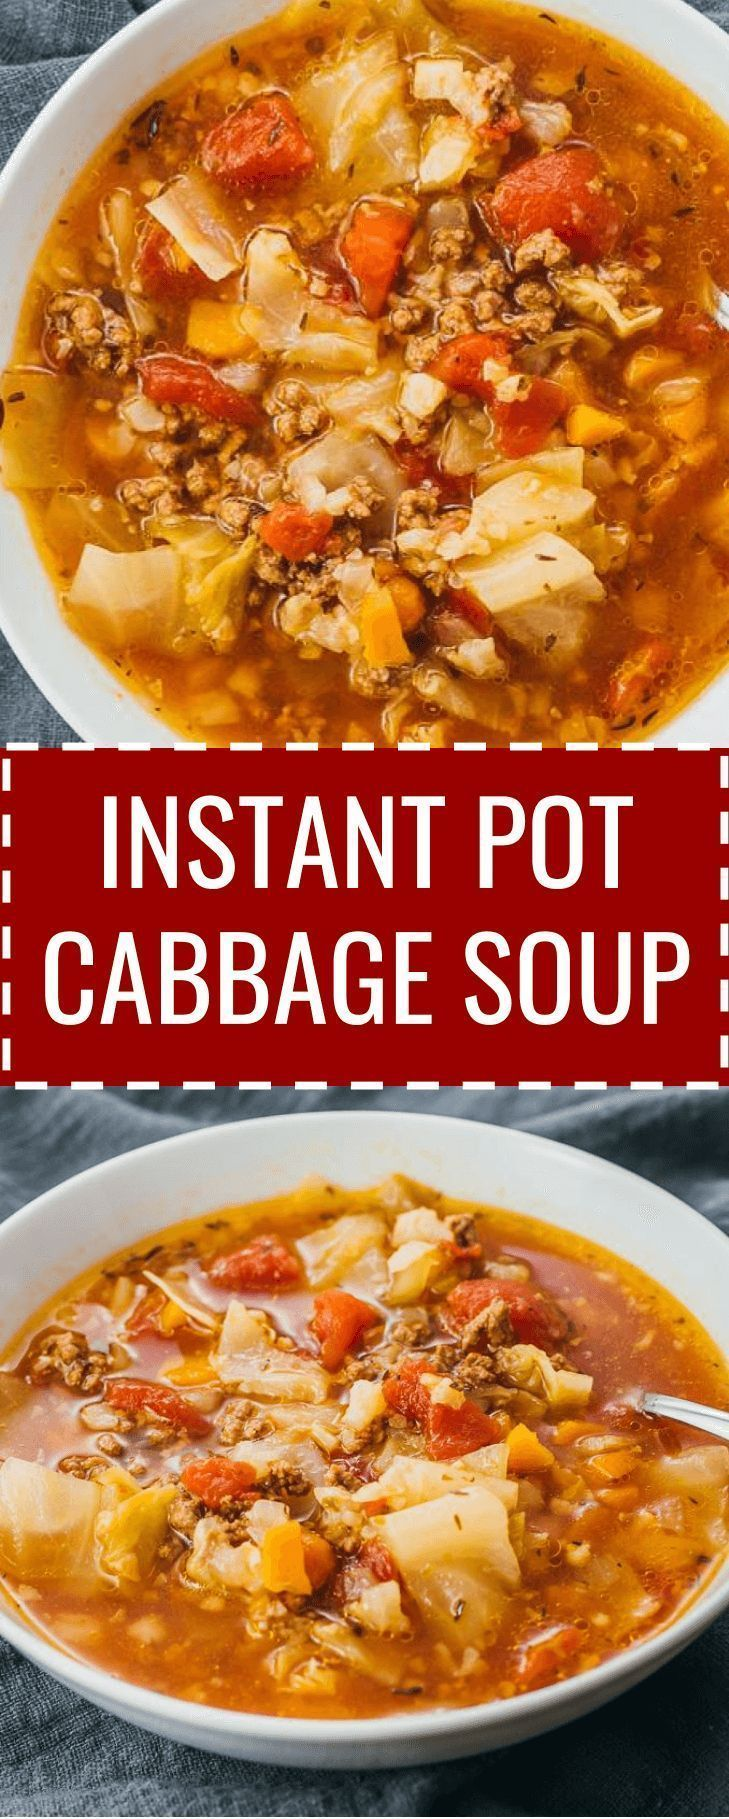 Instant Pot Cabbage Soup Cabbage Soup Recipes Cooker